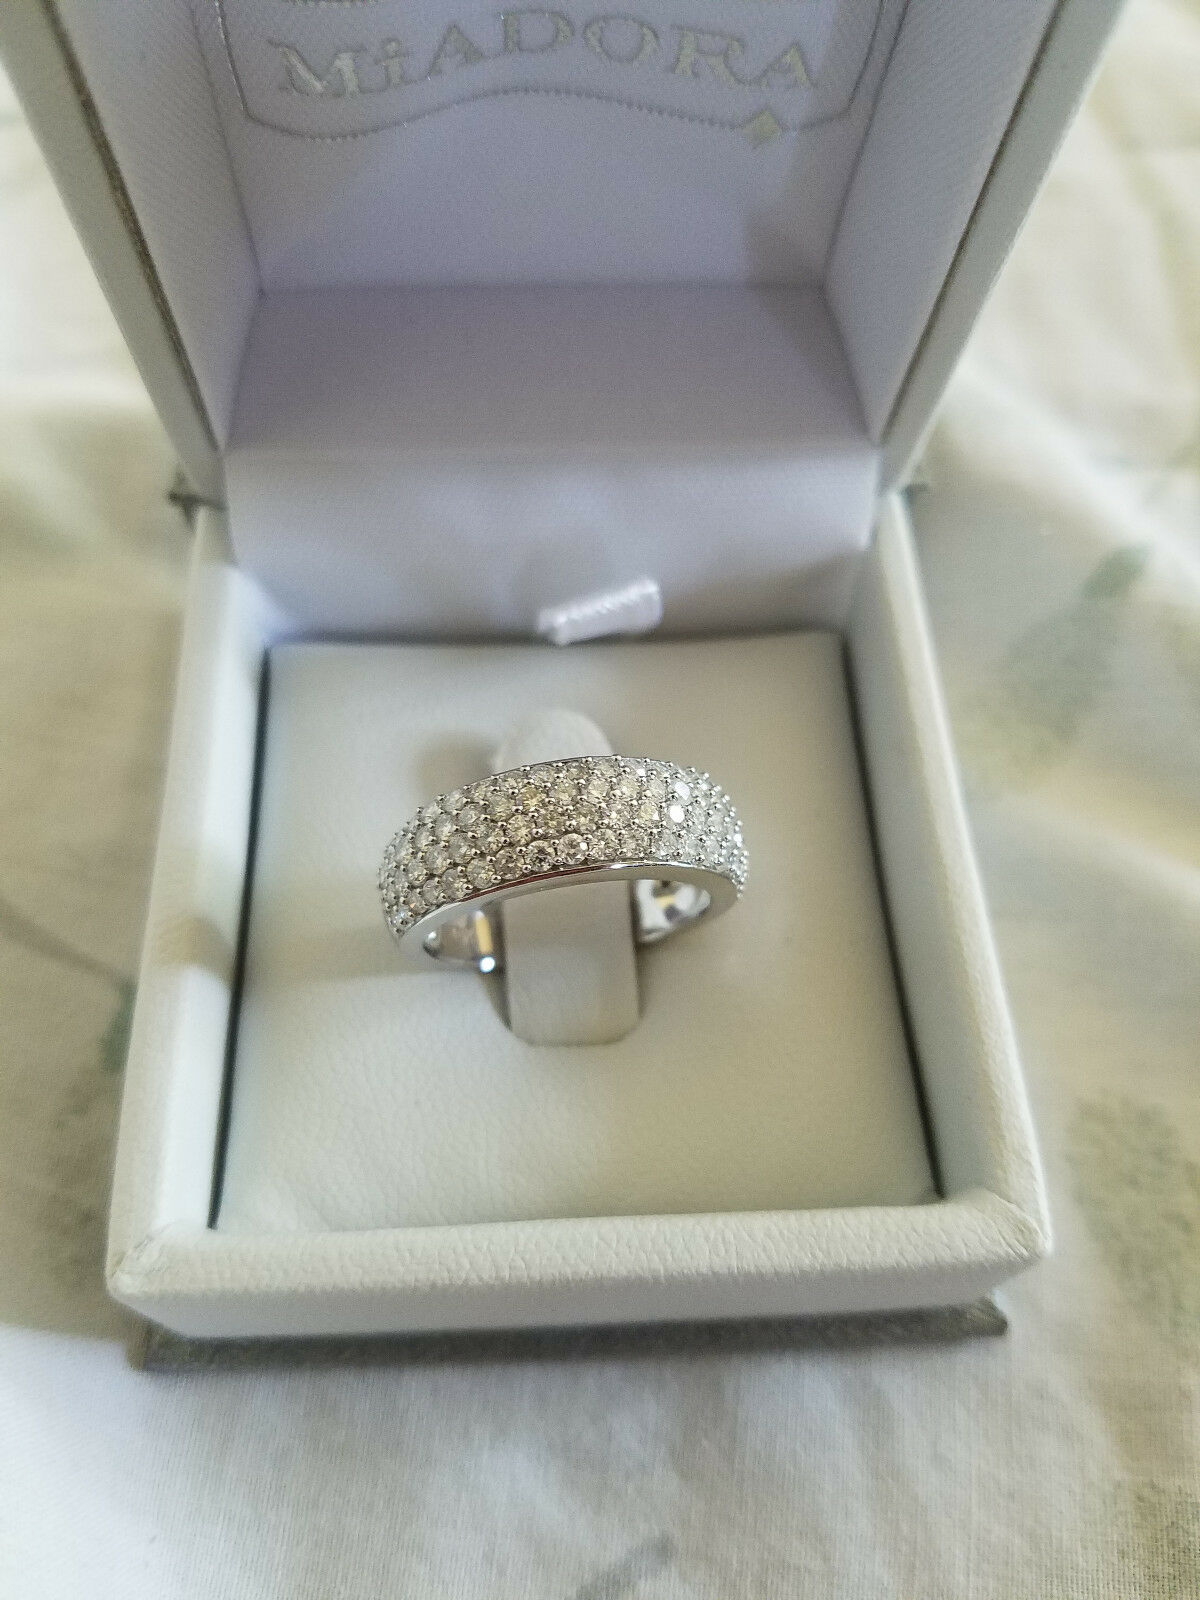 Wedding Engagement Ring White gold - Miadora - New Never Worn size 6